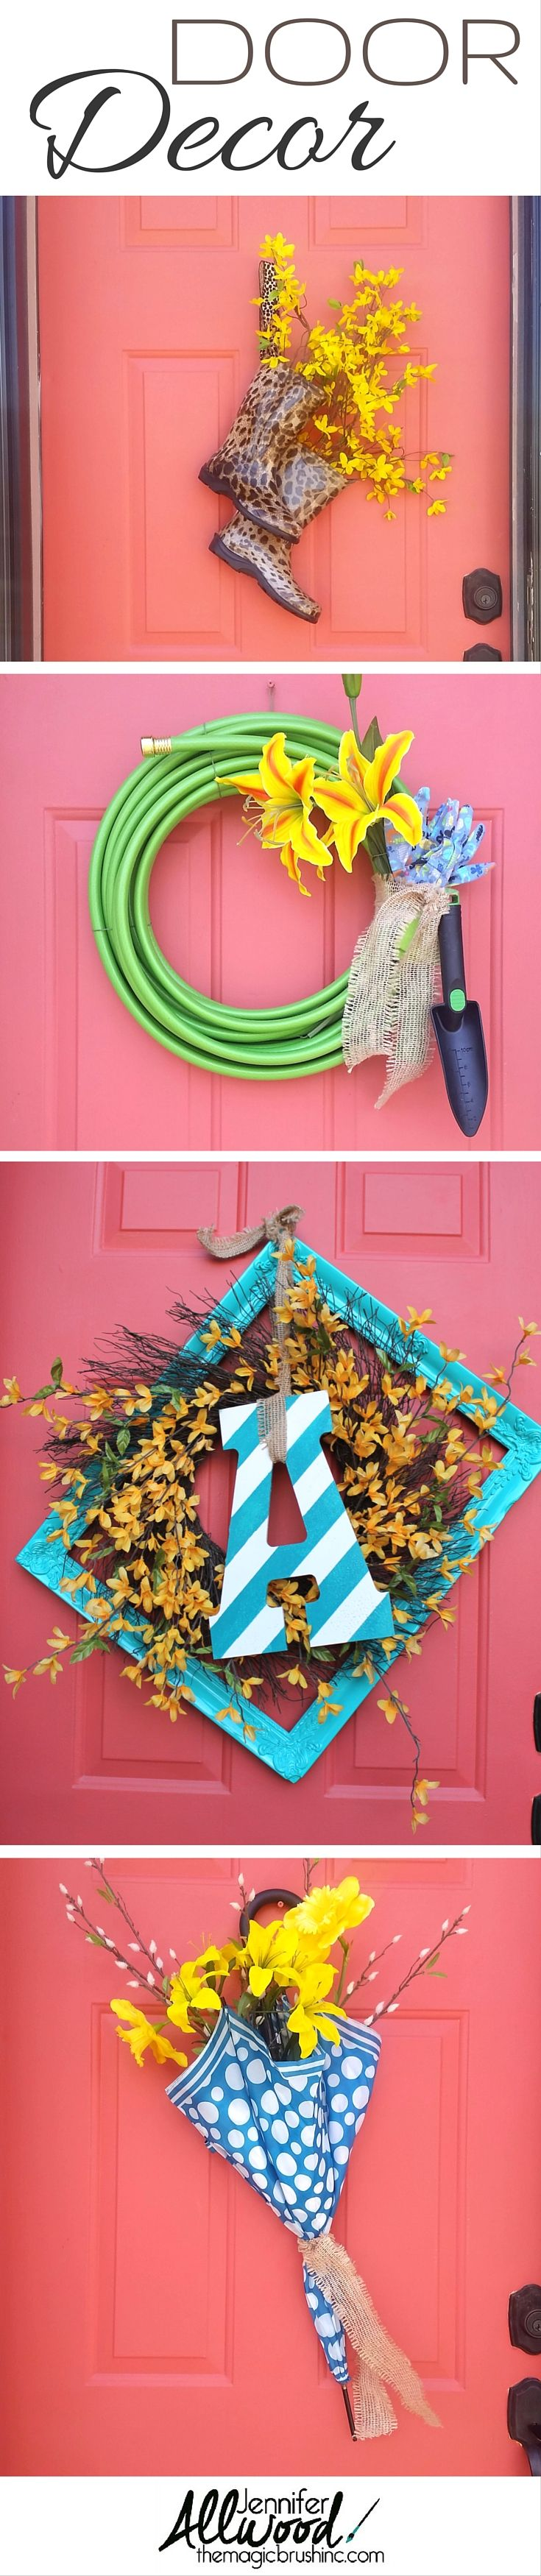 Front door decoration ideas. Rain boots + flowers, garden hose + flowers, painted art frame + painted wooden letter + flowers and a bright bold umbrella + flowers. More decorating tips and DIY projects at theMagicBrushinc.com